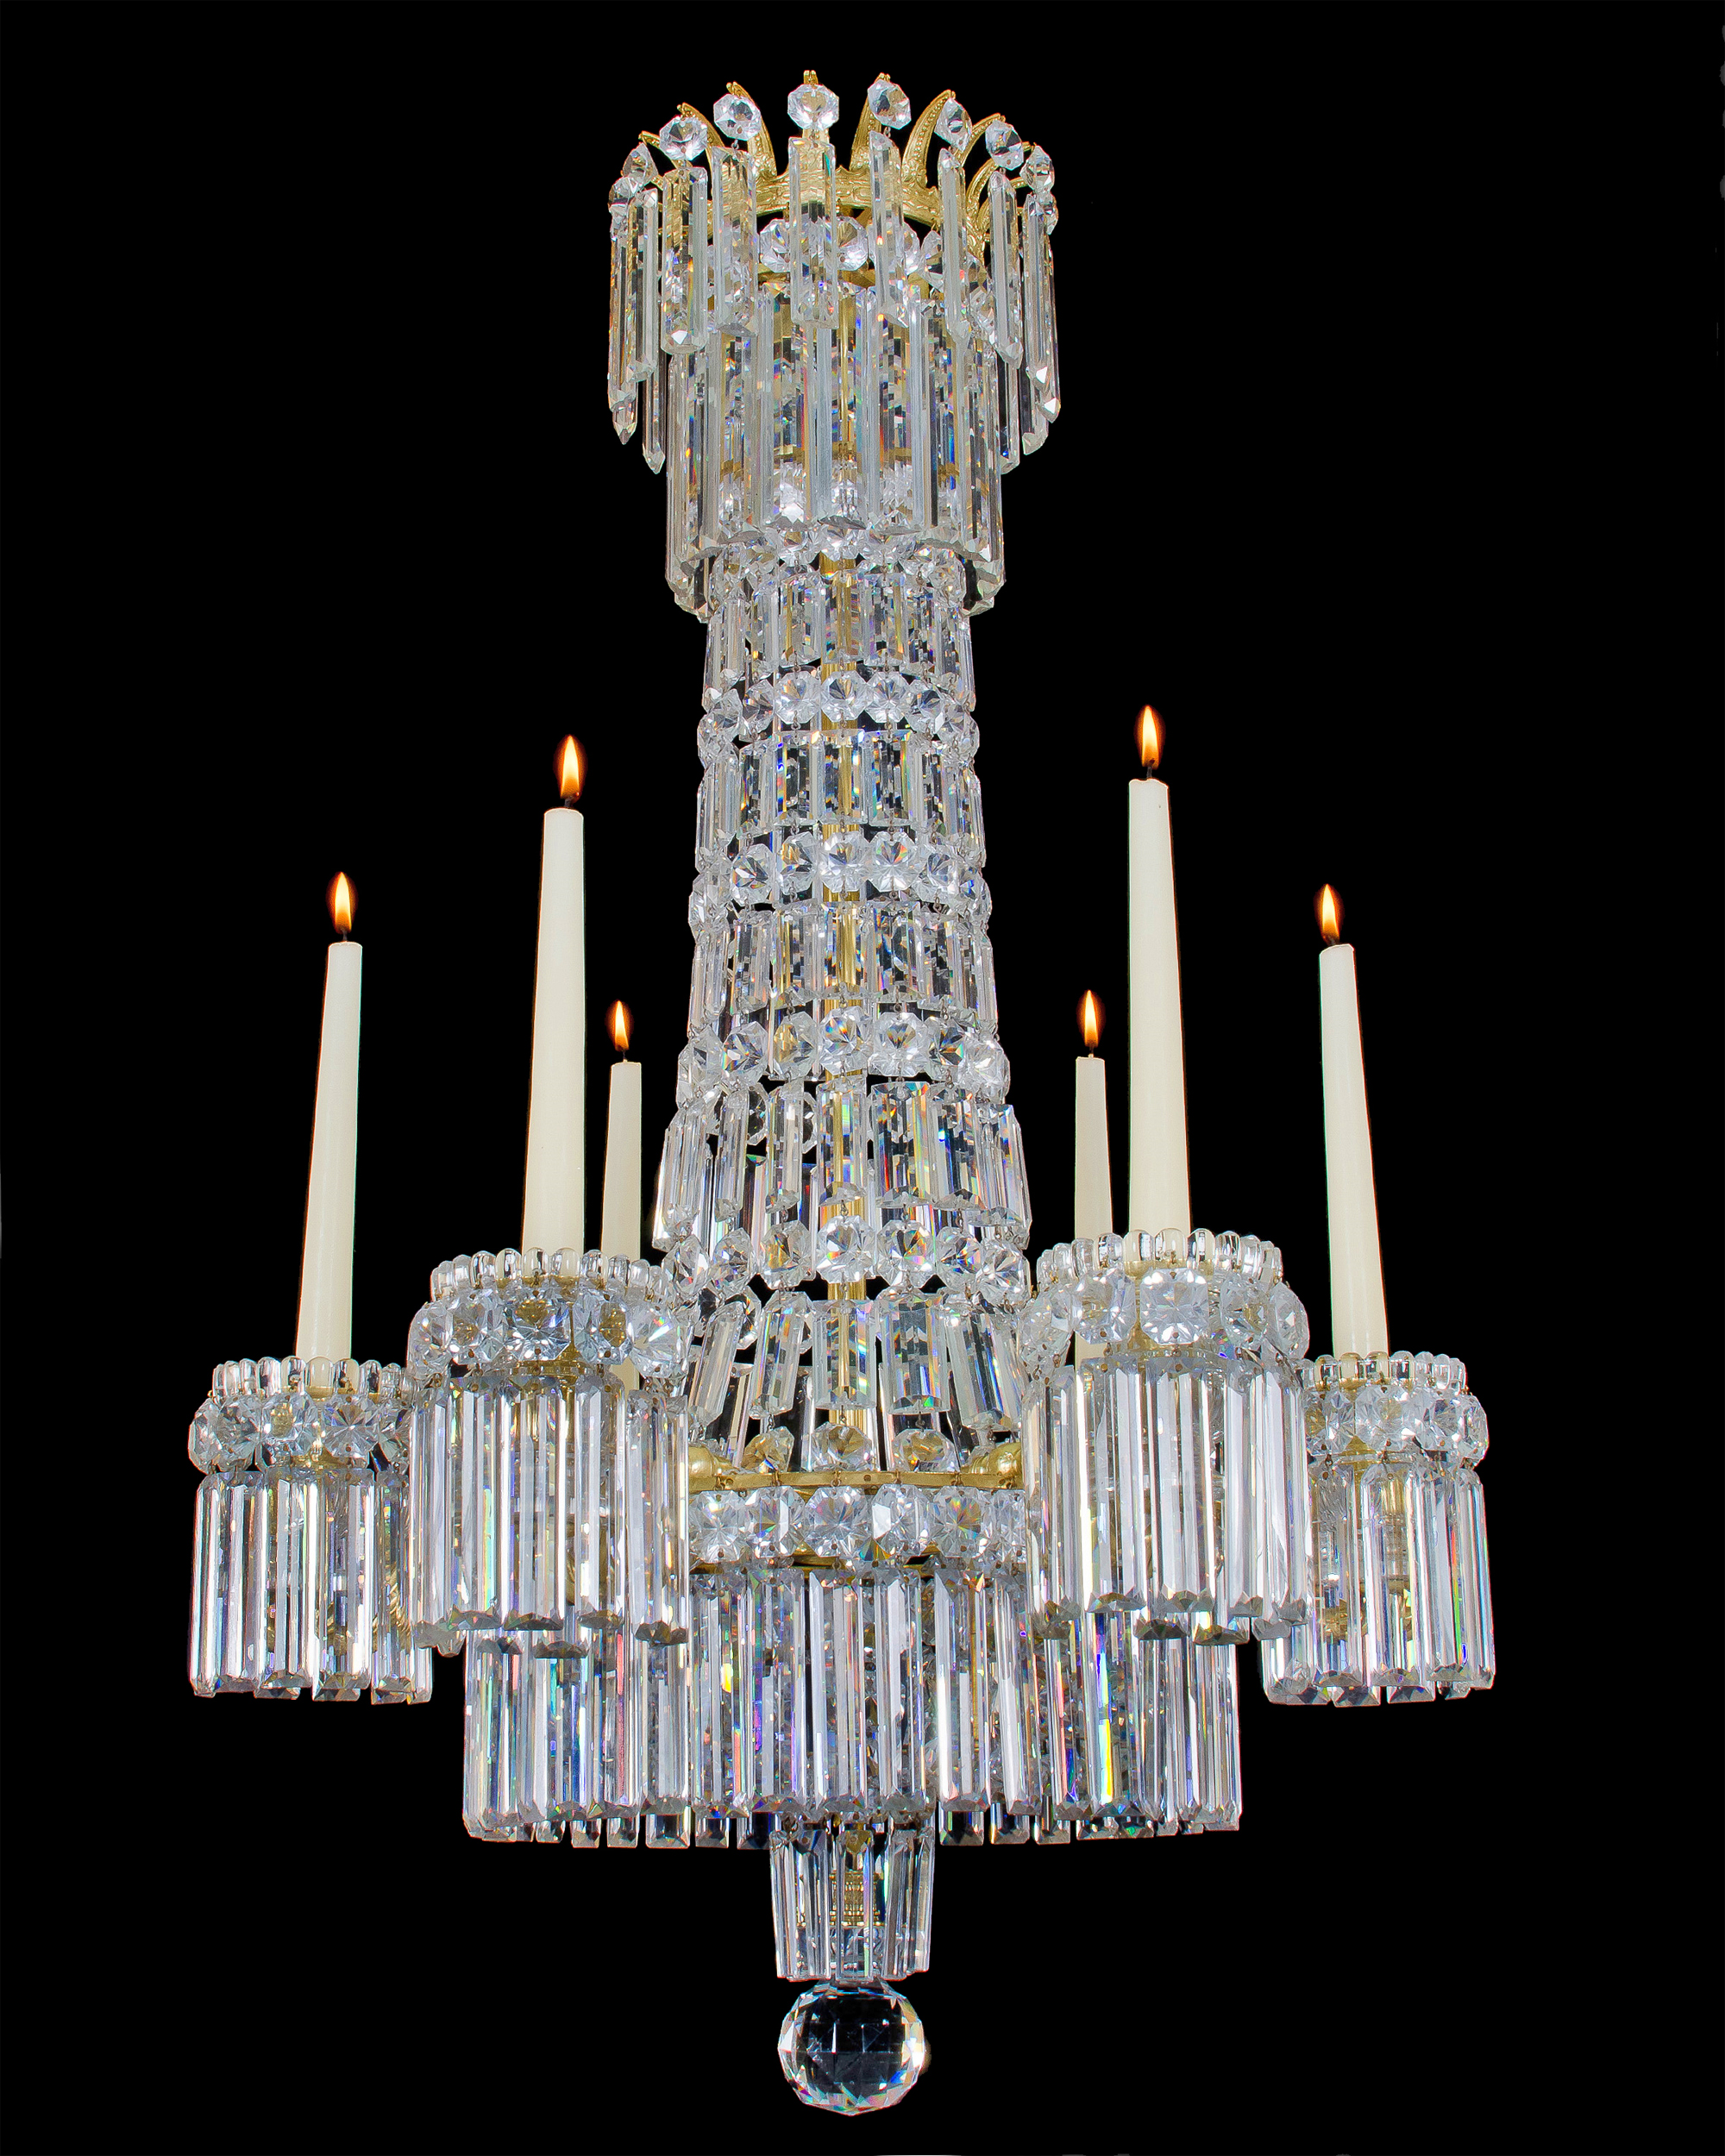 Regency chandelier, from Fileman Antiques